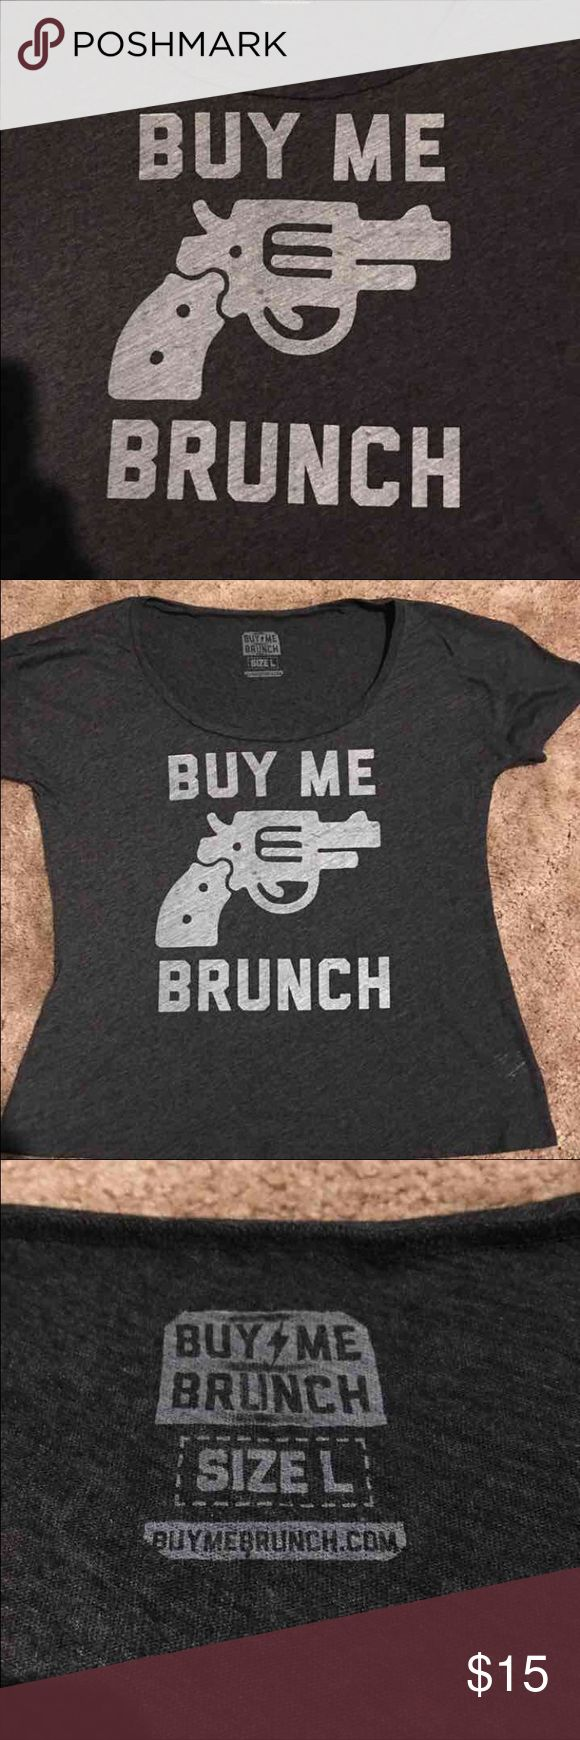 Buy Me Brunch off the shoulder shirt Final reduction! The Chiverys own Buy Me Brunch shirt. Scoop neck, off the shoulder fit. Meant to be worn loose. Size large, never worn! Tags: Chive, Chivery, KCCO, Buy Me Brunch, Resignation Media, Resignation Brewery, Yoga, Comfy, Off the shoulder, Brunch, black buy me brunch Tops Tees - Short Sleeve